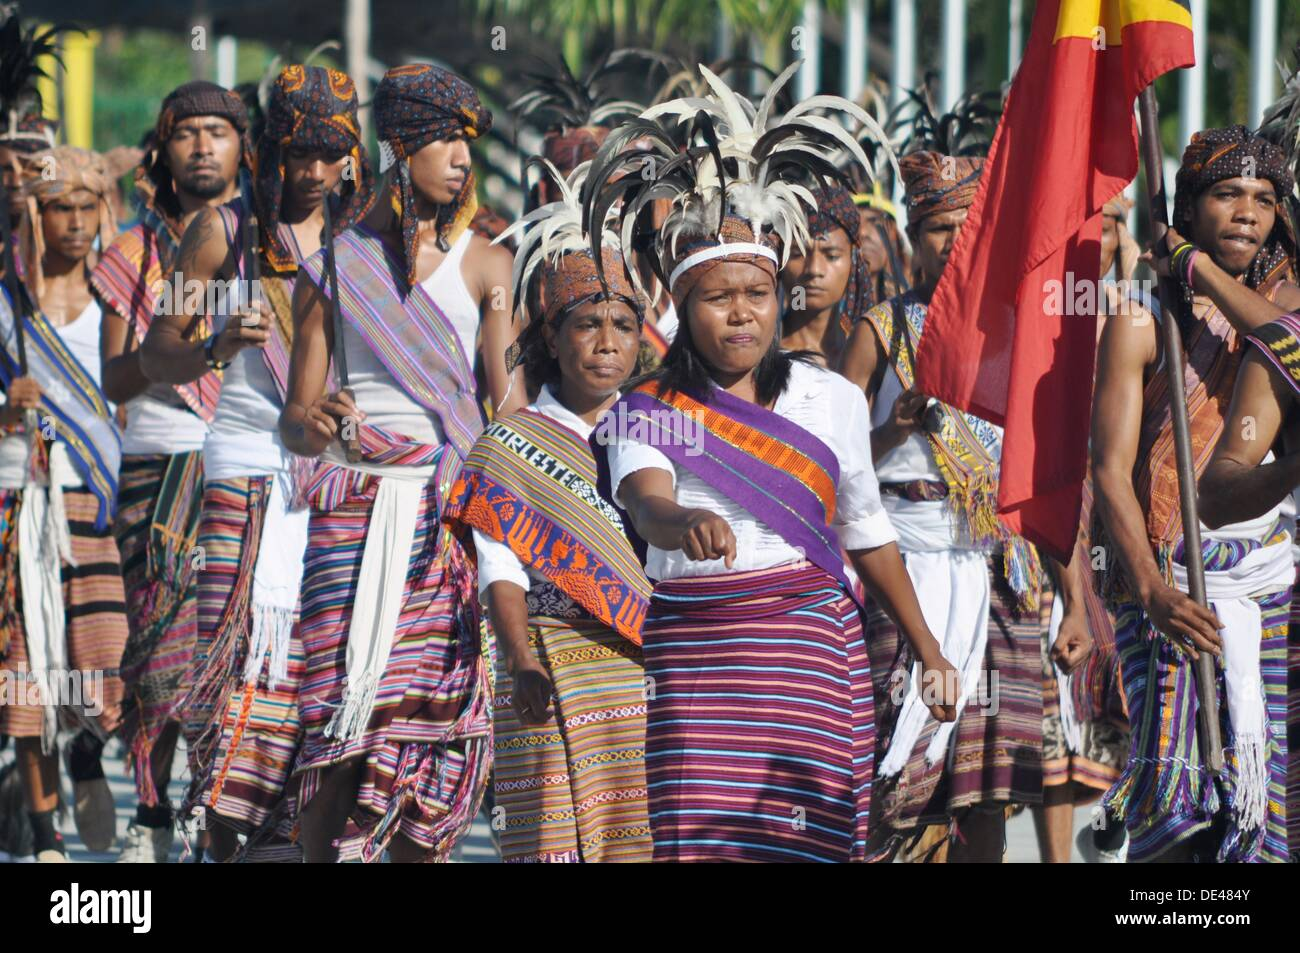 Image result for East Timor